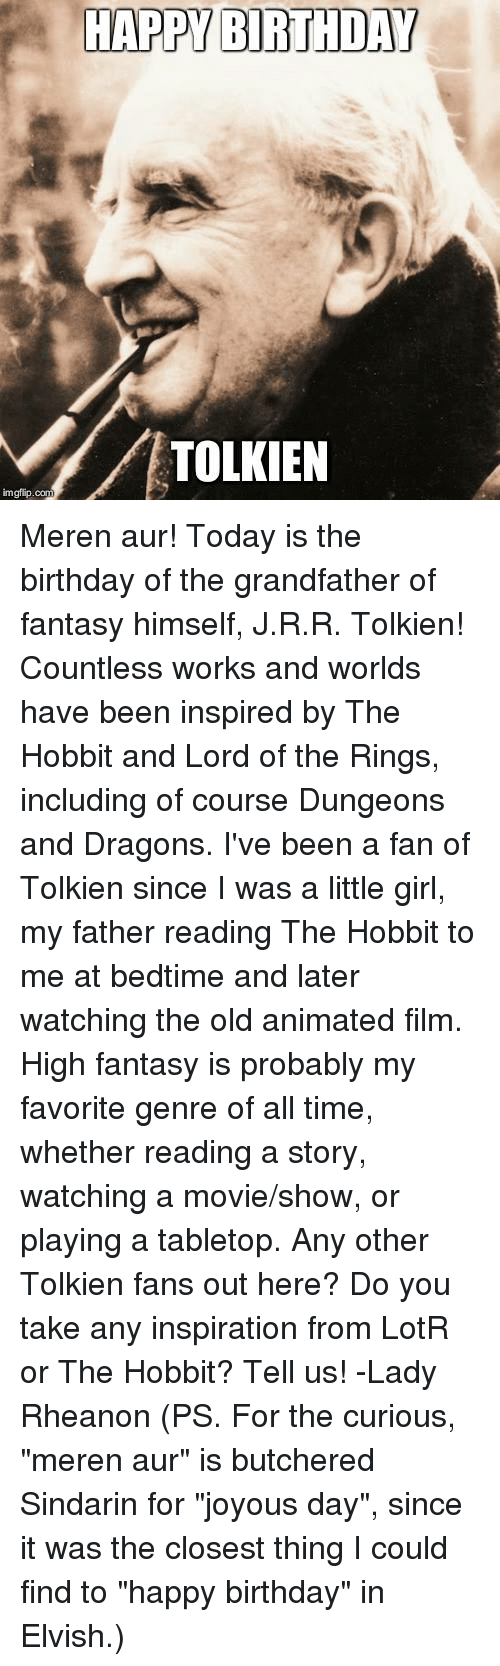 """Grandfathered: HAPPY BIRTHDAY  TOLKIEN  imgflip.com Meren aur! Today is the birthday of the grandfather of fantasy himself, J.R.R. Tolkien! Countless works and worlds have been inspired by The Hobbit and Lord of the Rings, including of course Dungeons and Dragons. I've been a fan of Tolkien since I was a little girl, my father reading The Hobbit to me at bedtime and later watching the old animated film. High fantasy is probably my favorite genre of all time, whether reading a story, watching a movie/show, or playing a tabletop.   Any other Tolkien fans out here? Do you take any inspiration from LotR or The Hobbit? Tell us!   -Lady Rheanon   (PS. For the curious, """"meren aur"""" is butchered Sindarin for """"joyous day"""", since it was the closest thing I could find to """"happy birthday"""" in Elvish.)"""